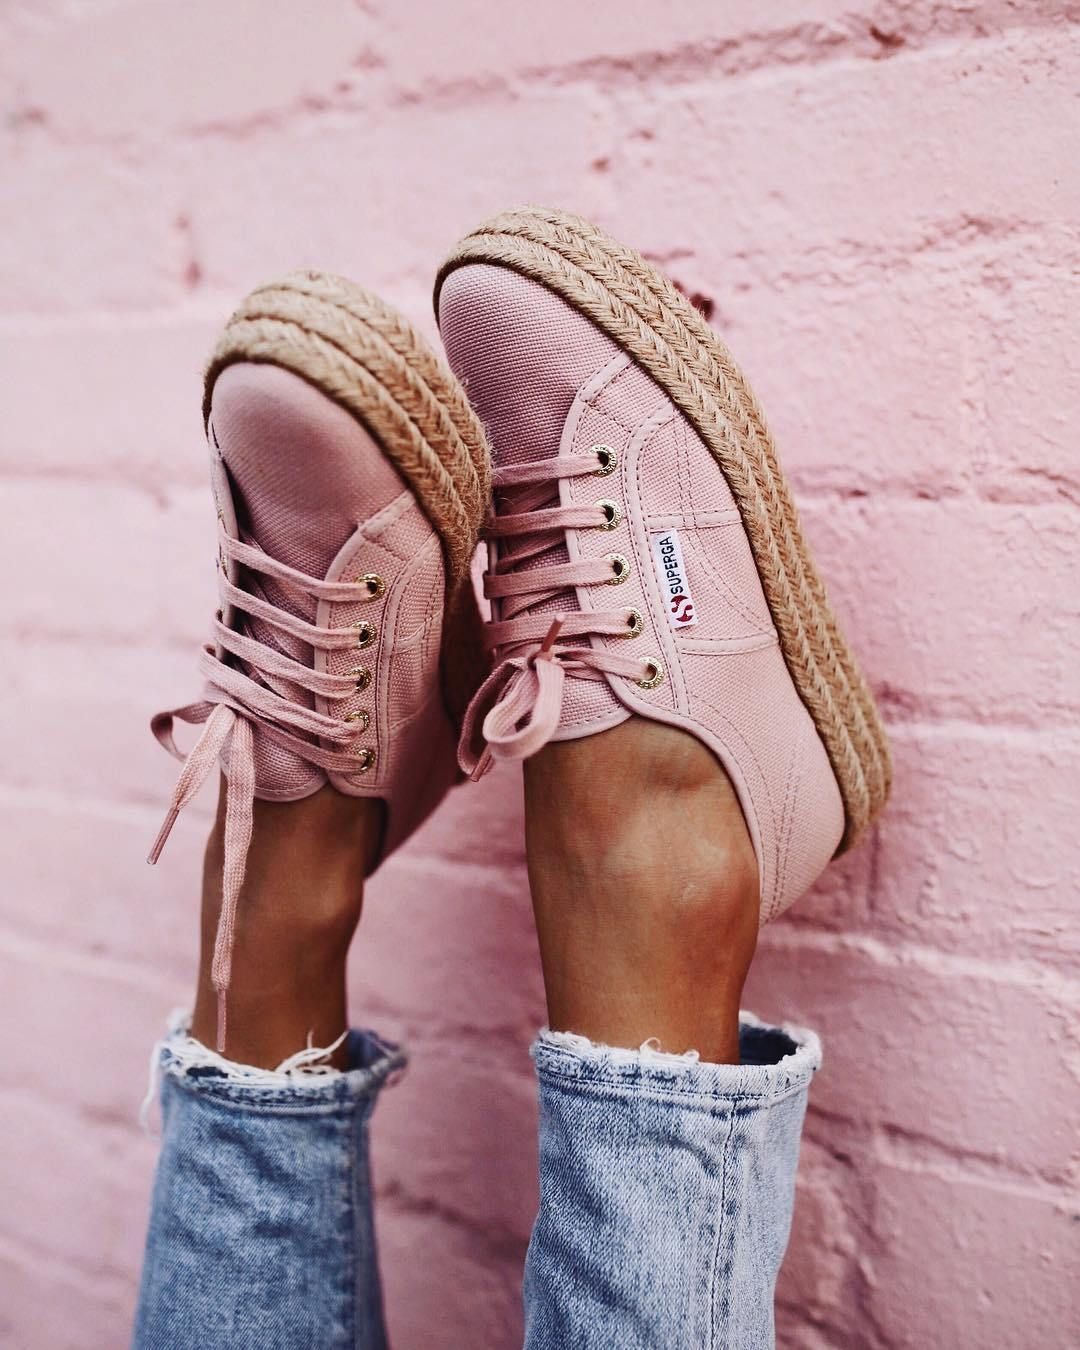 SNEAKERS PASSION: HOW TO COMBINE AND WHERE TO BUY! The